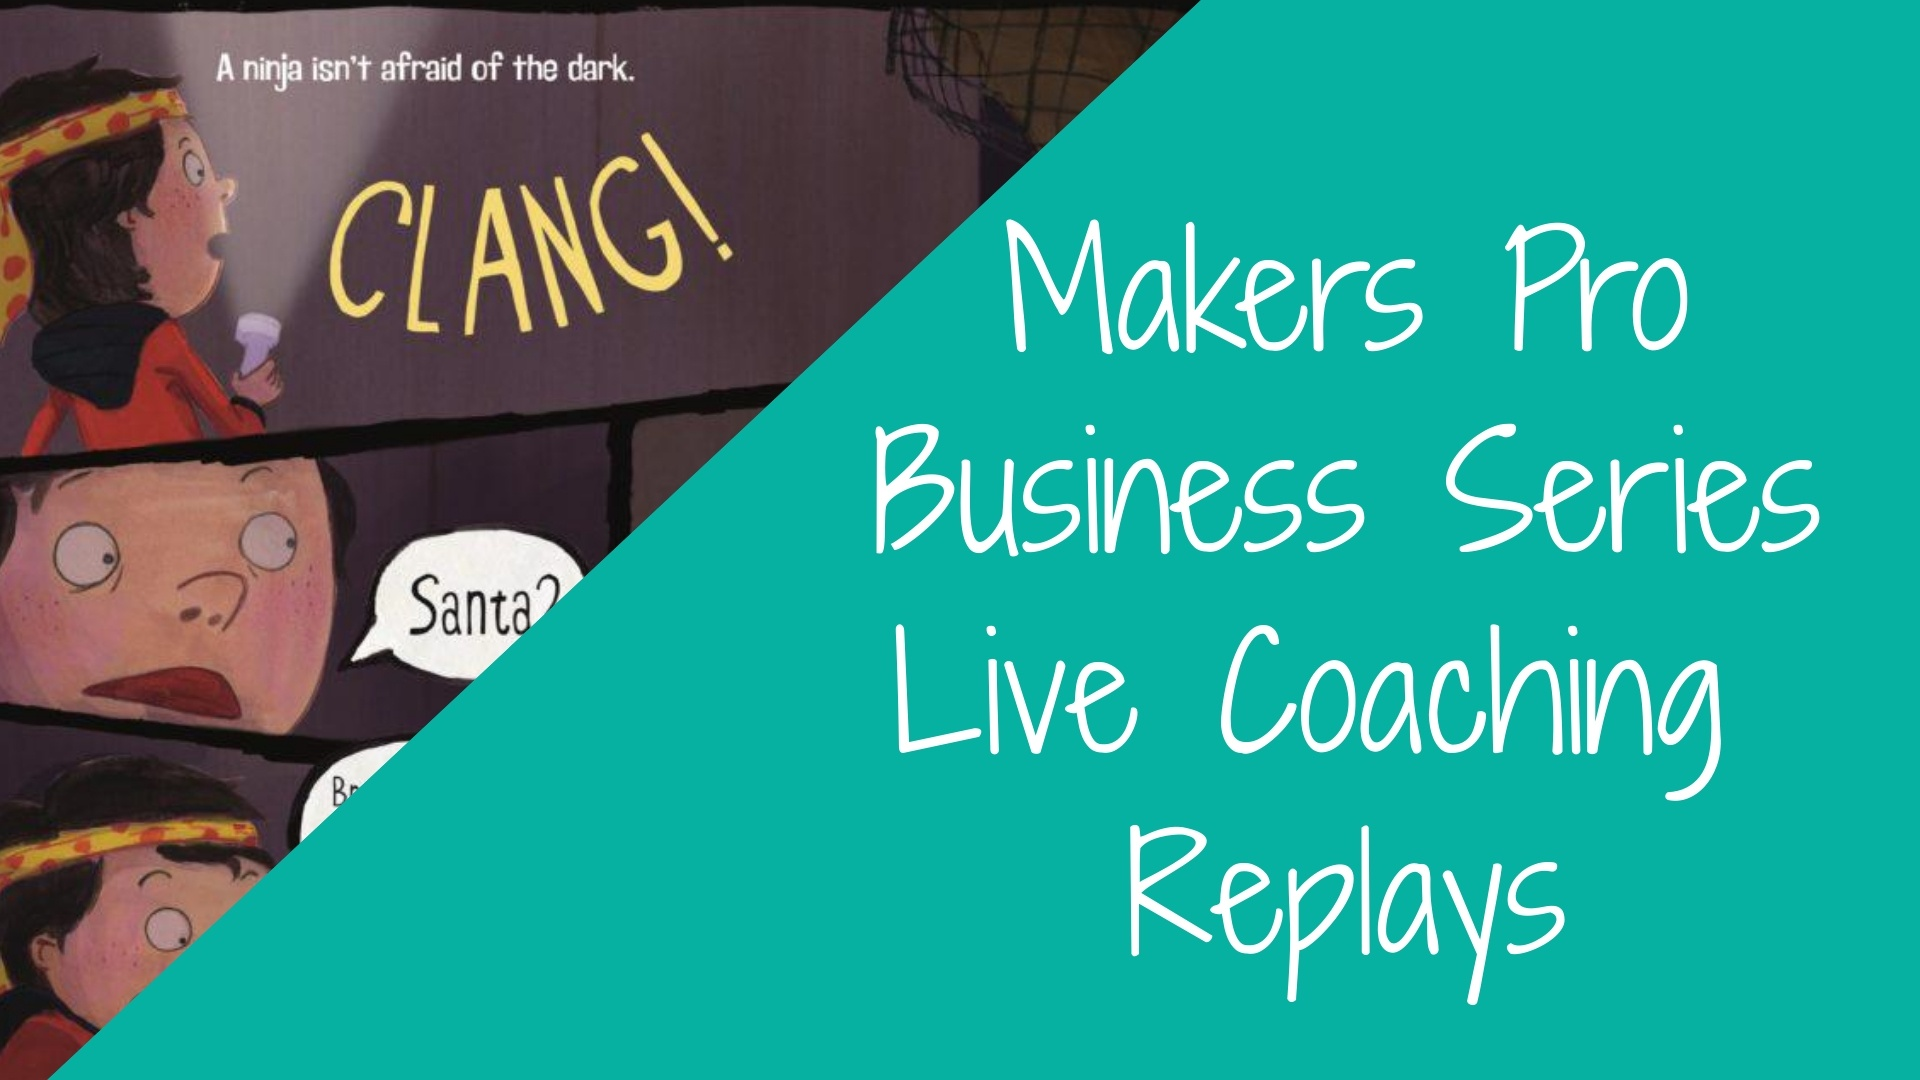 WORKSHOP: Makers Pro Business Series & Coaching